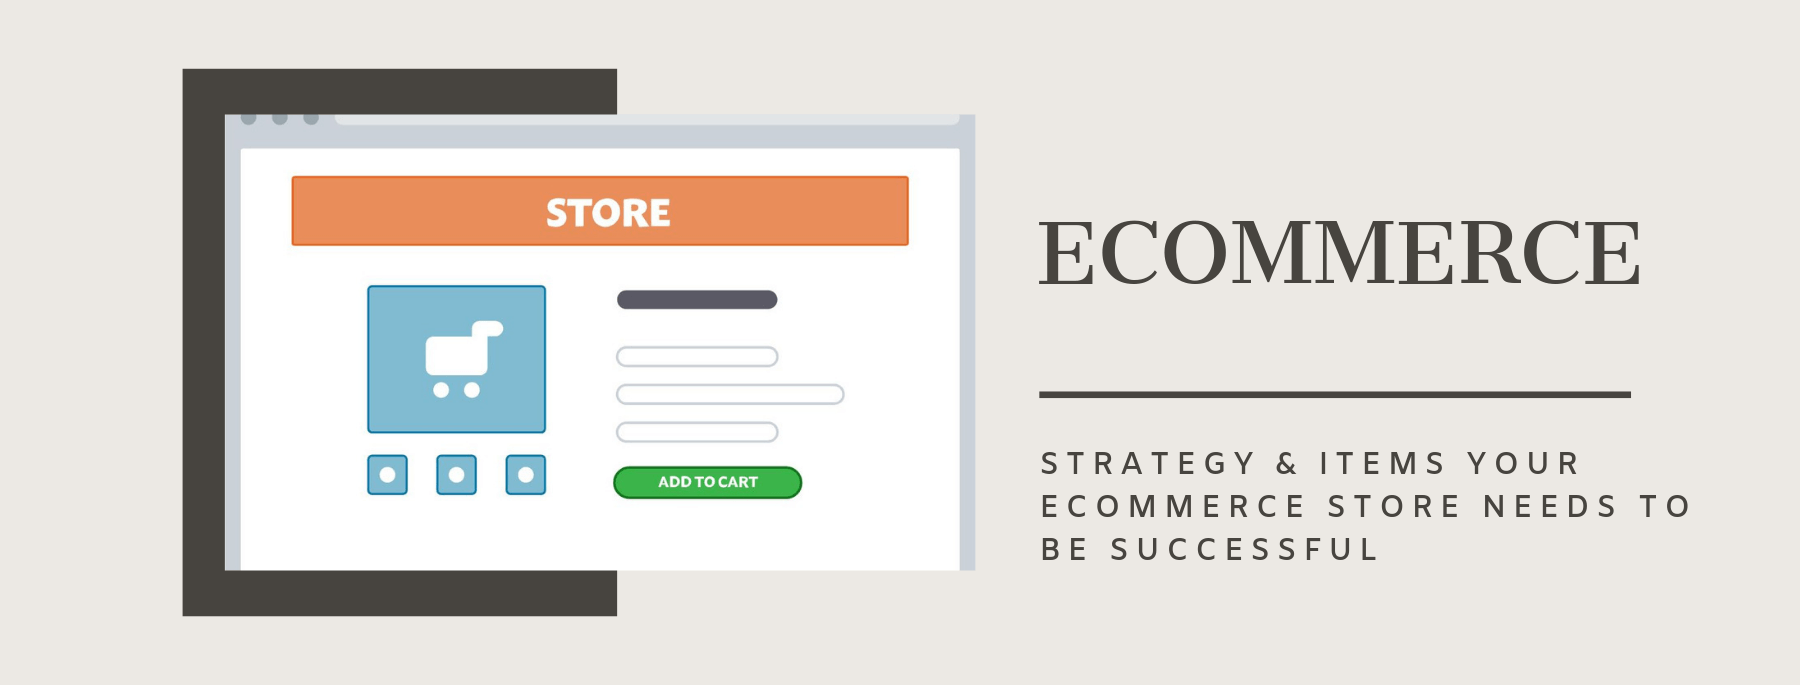 trategy & Items your Ecommerce Store Needs to be Successful